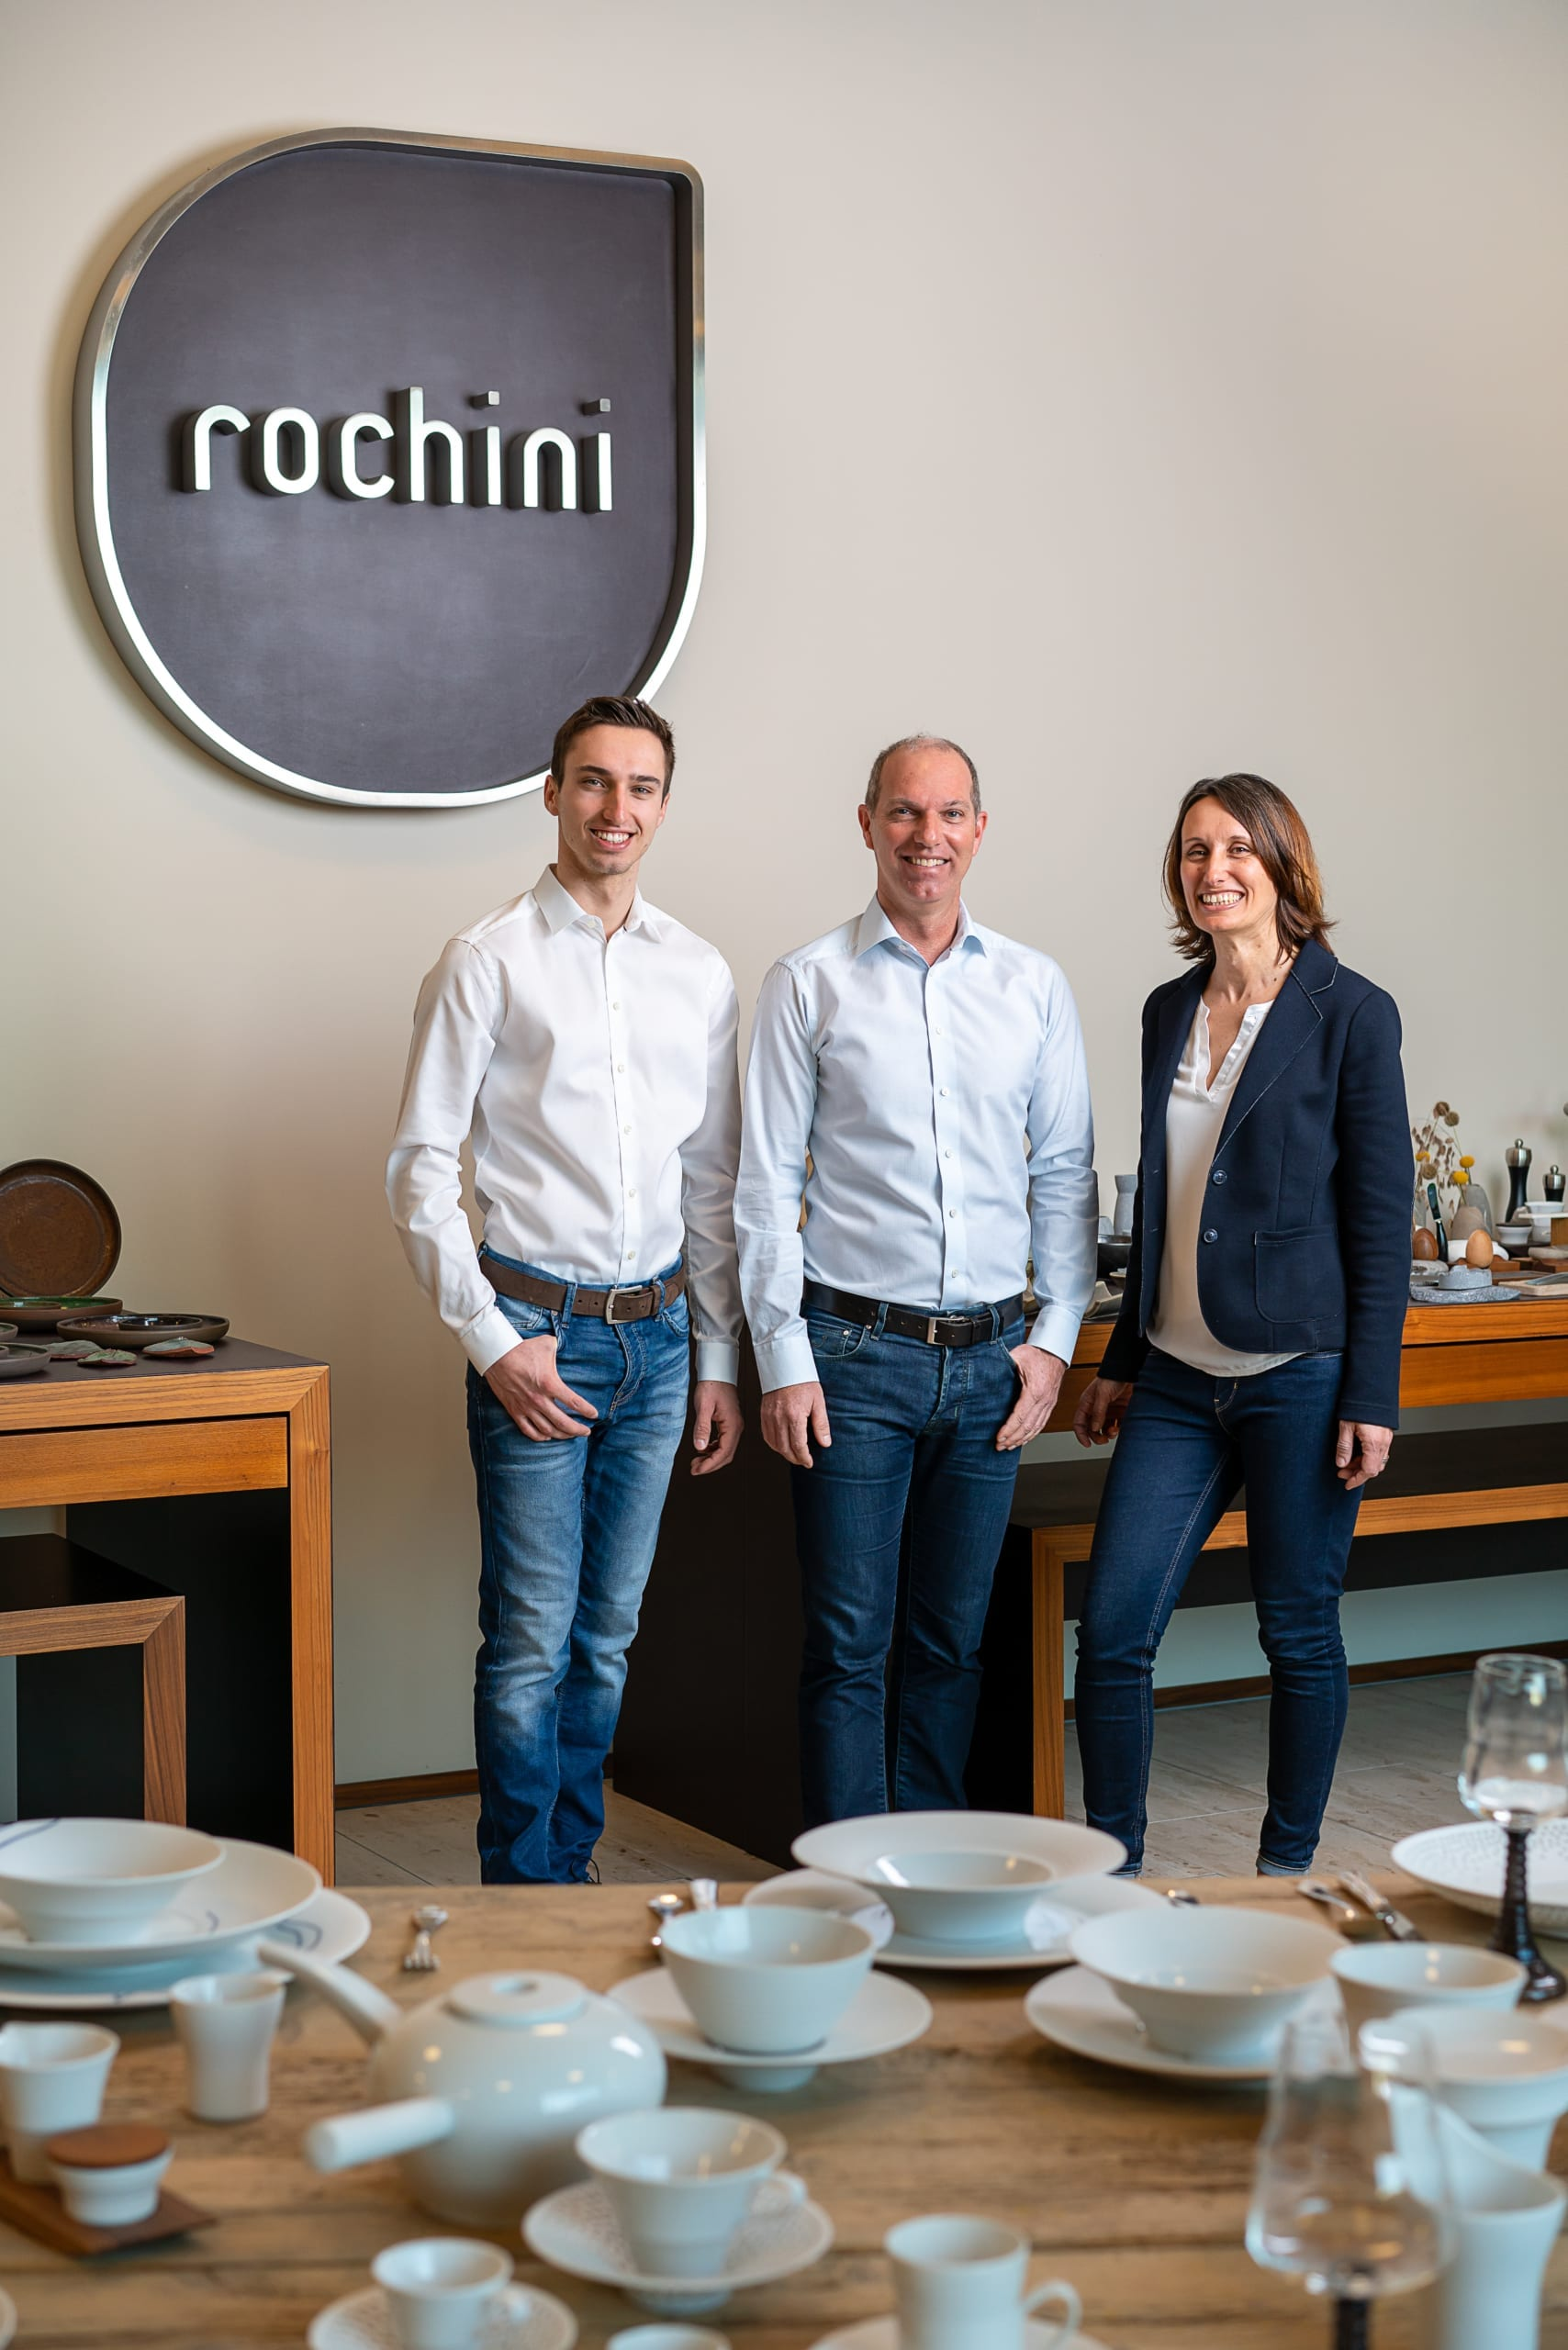 Rochini Fam 002 scaled The Rochini family   we do everything for finest tabletop